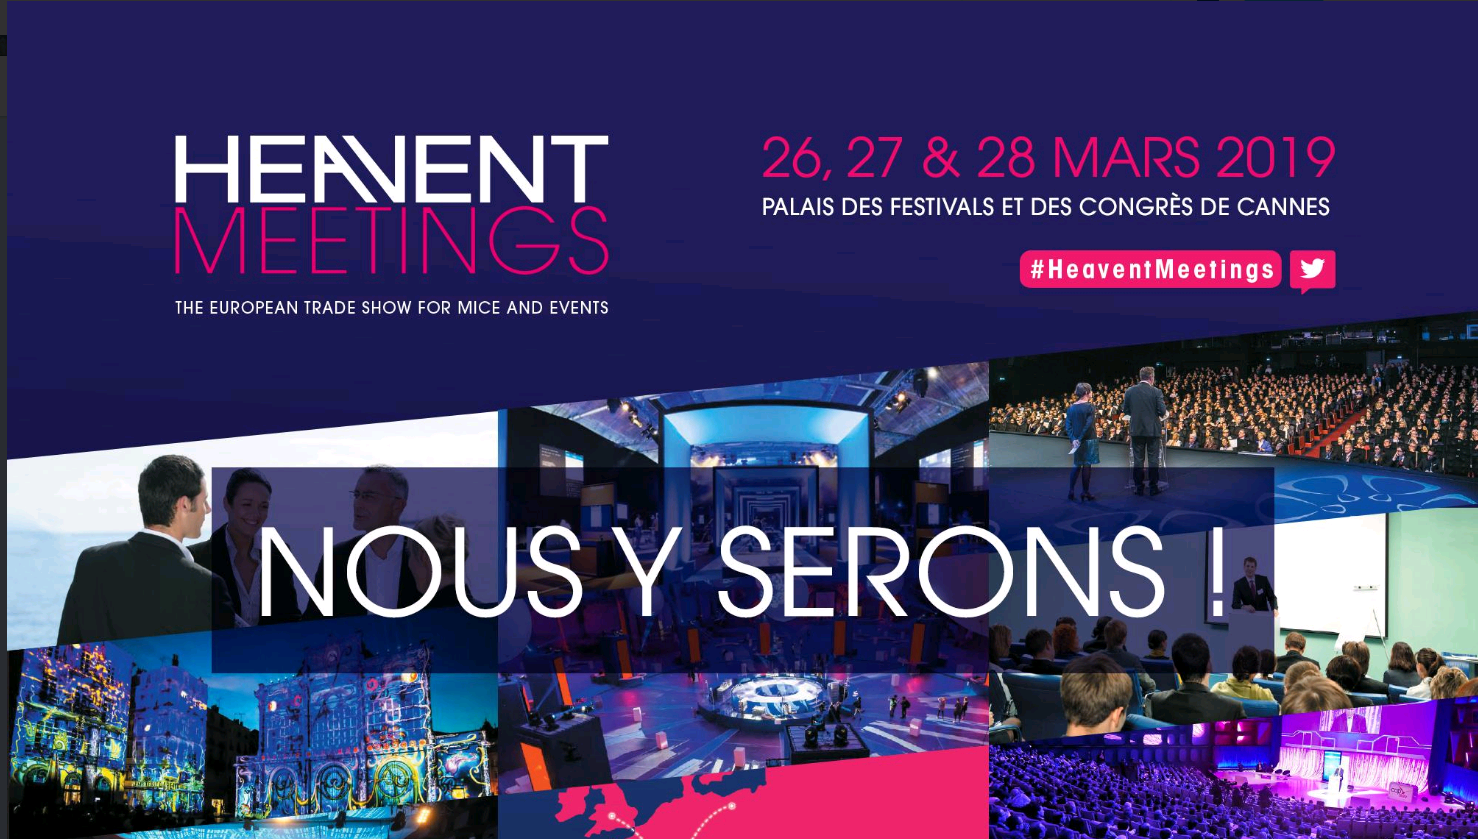 Alpexpo participe au salon Heavent Meetings mars 2019 à Cannes